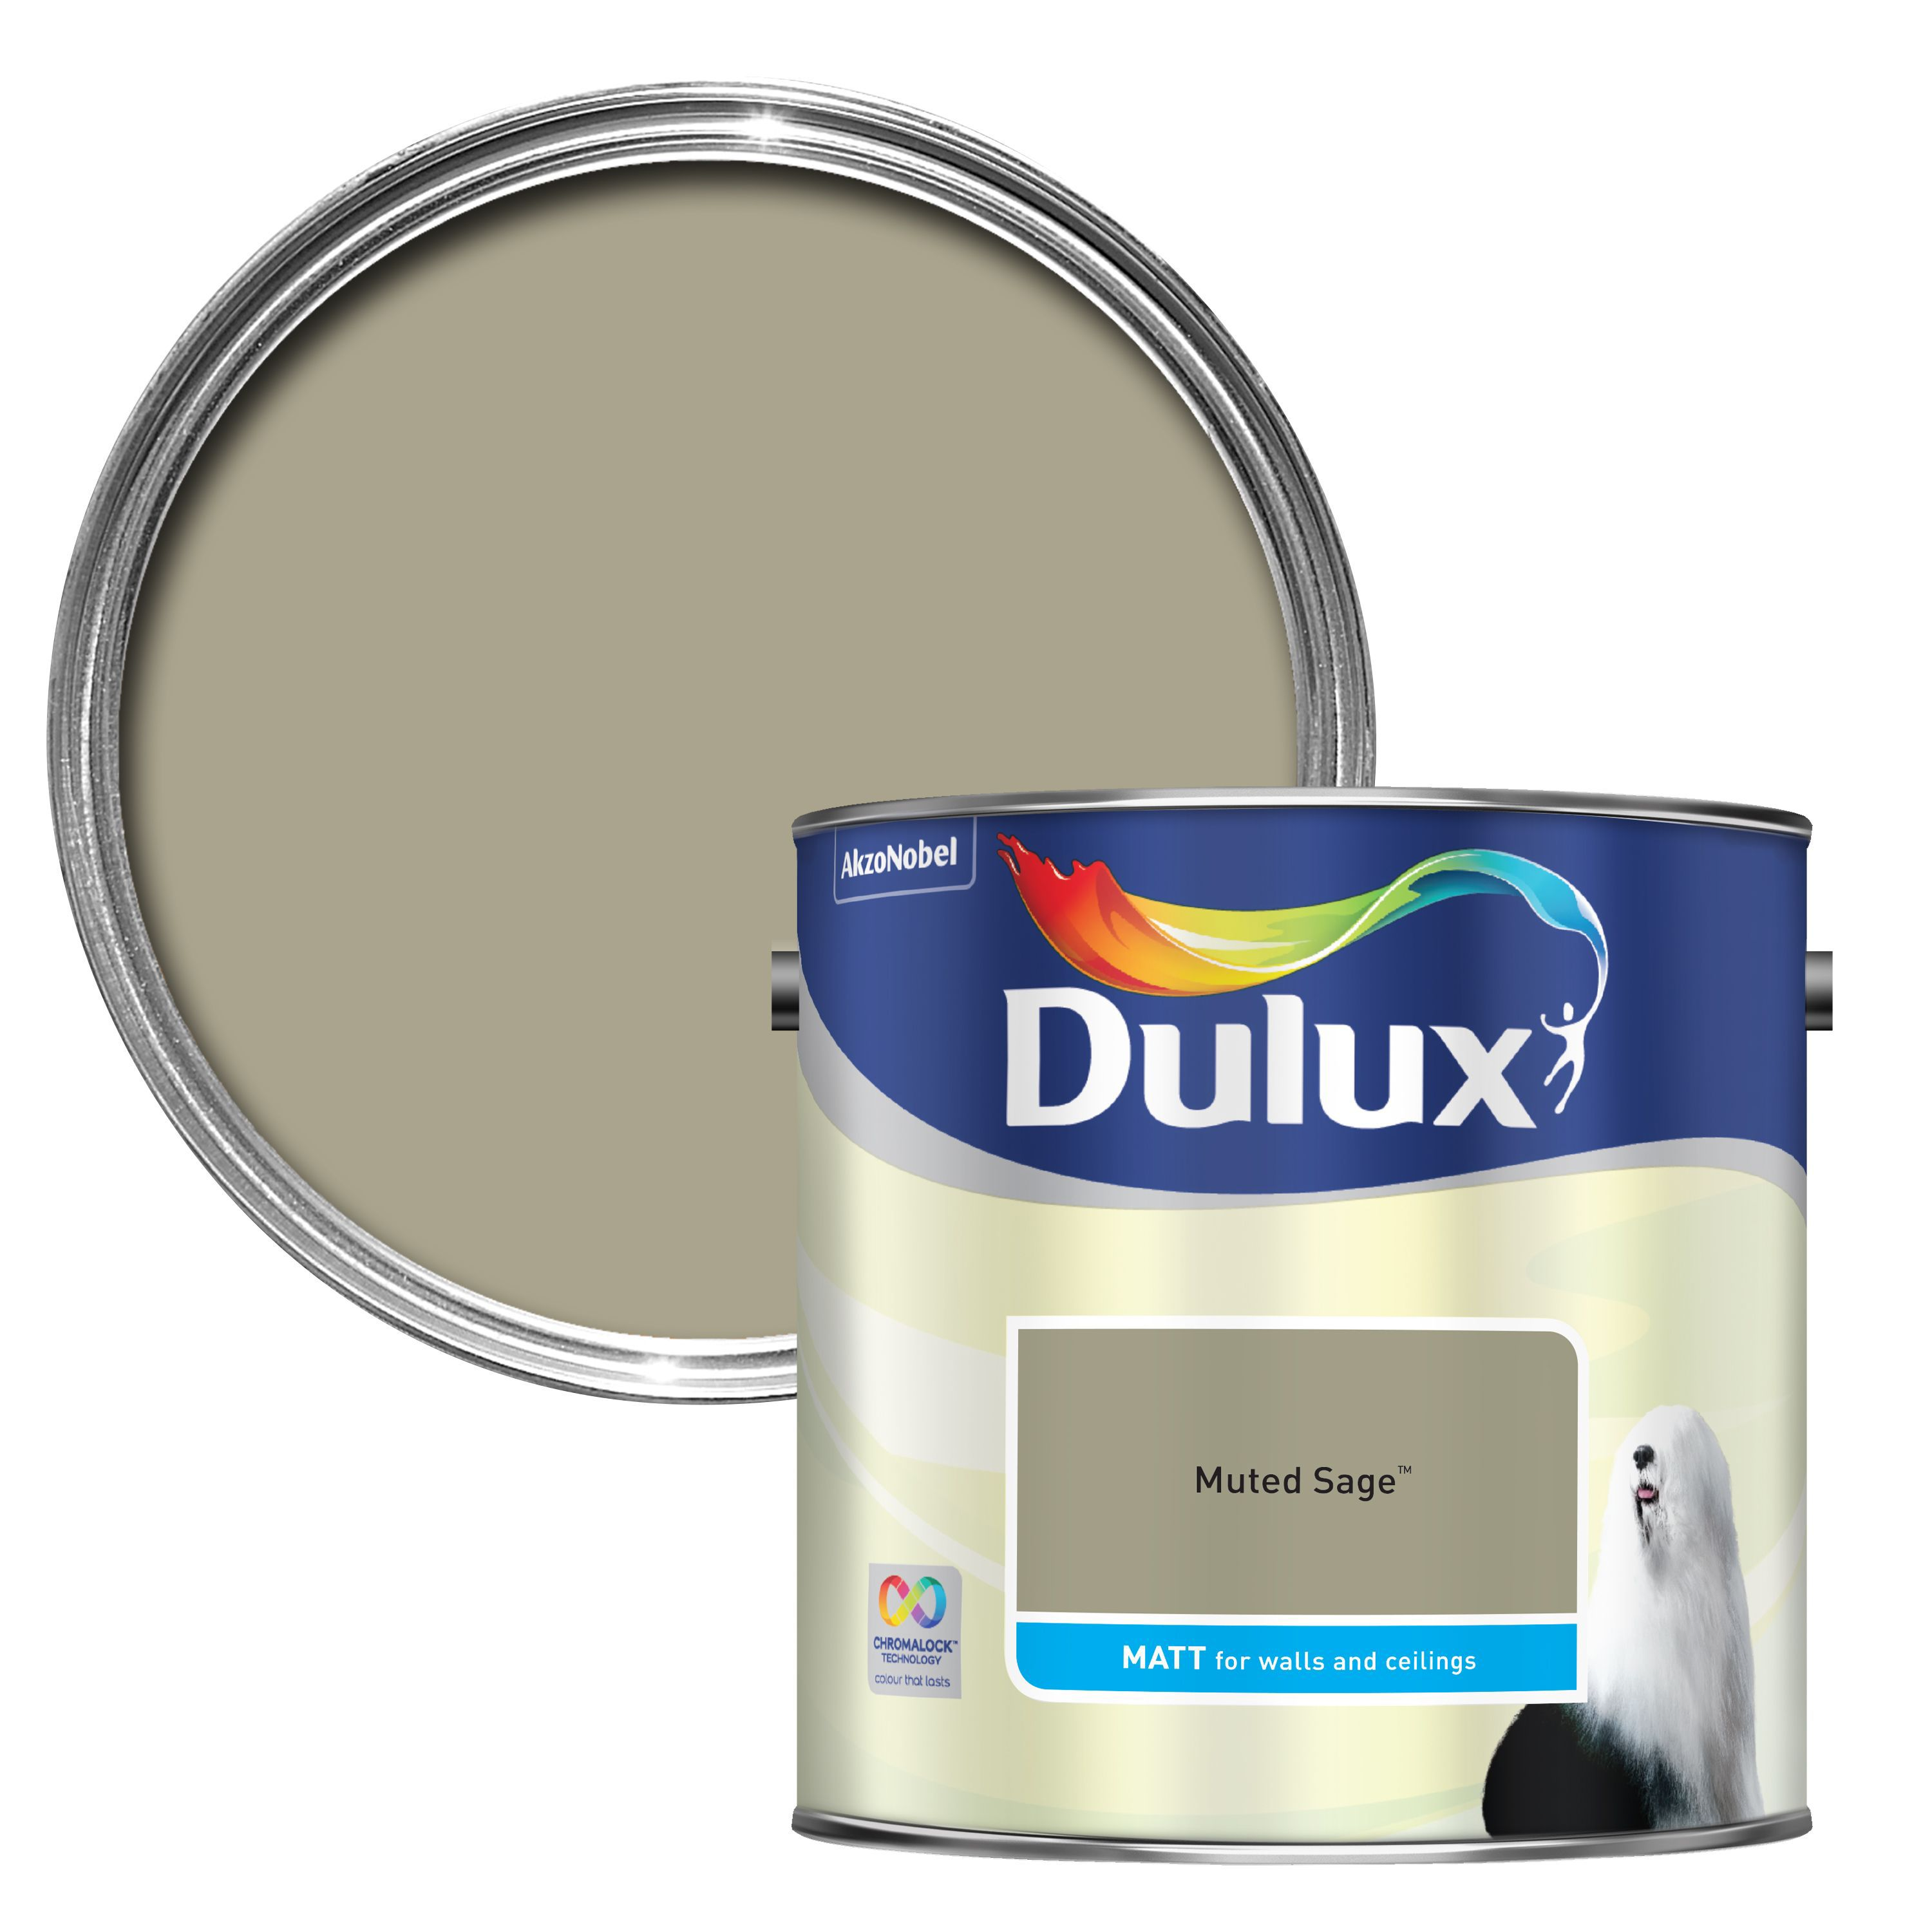 Dulux Muted Sage Matt Emulsion Paint 2.5l